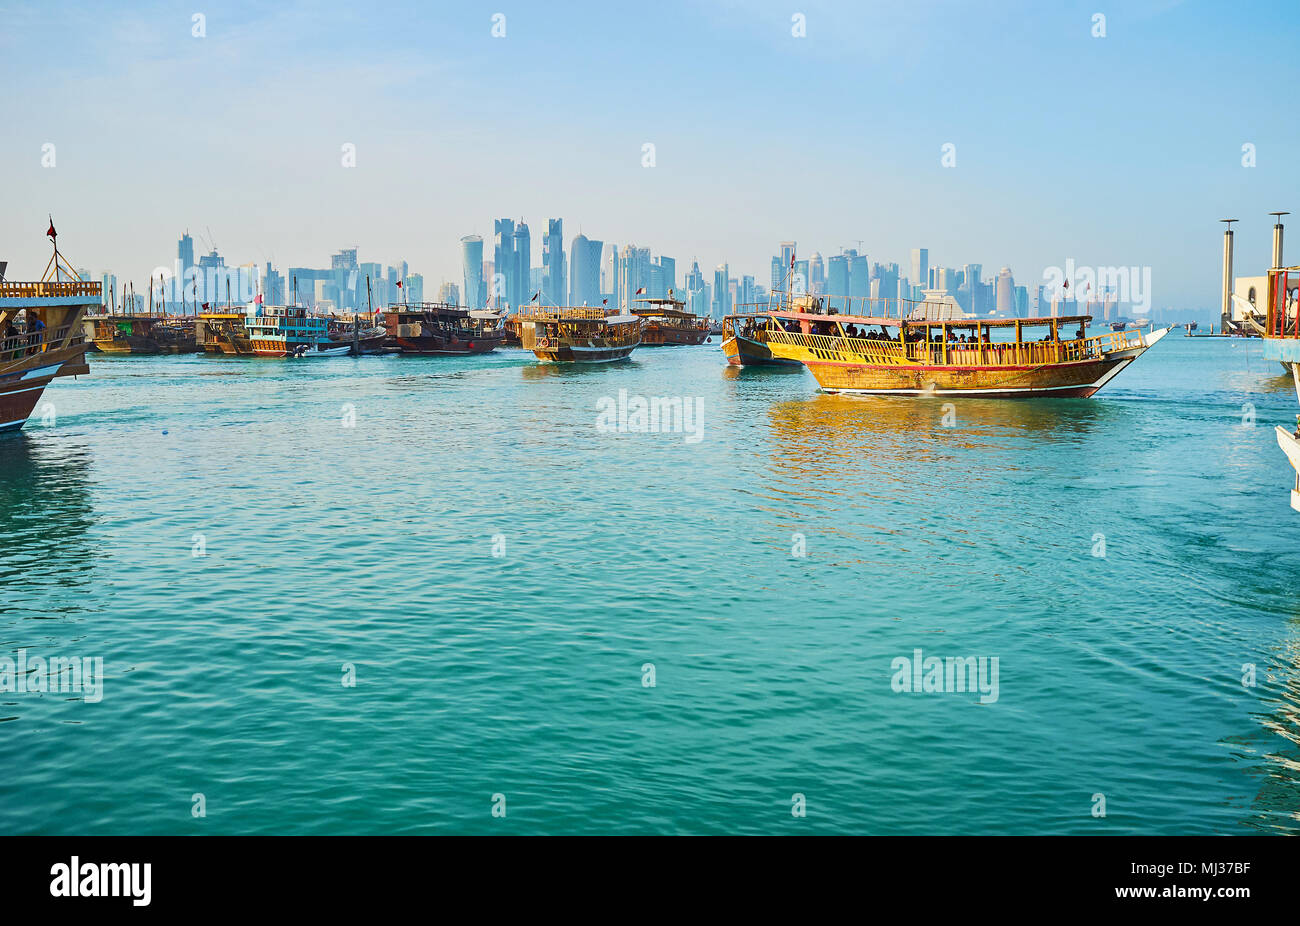 DOHA, QATAR - FEBRUARY 13, 2018: The numerous old wooden dhows are moored in harbor, this tourist fleet attracts people to enjoy sea trips, on Februar - Stock Image